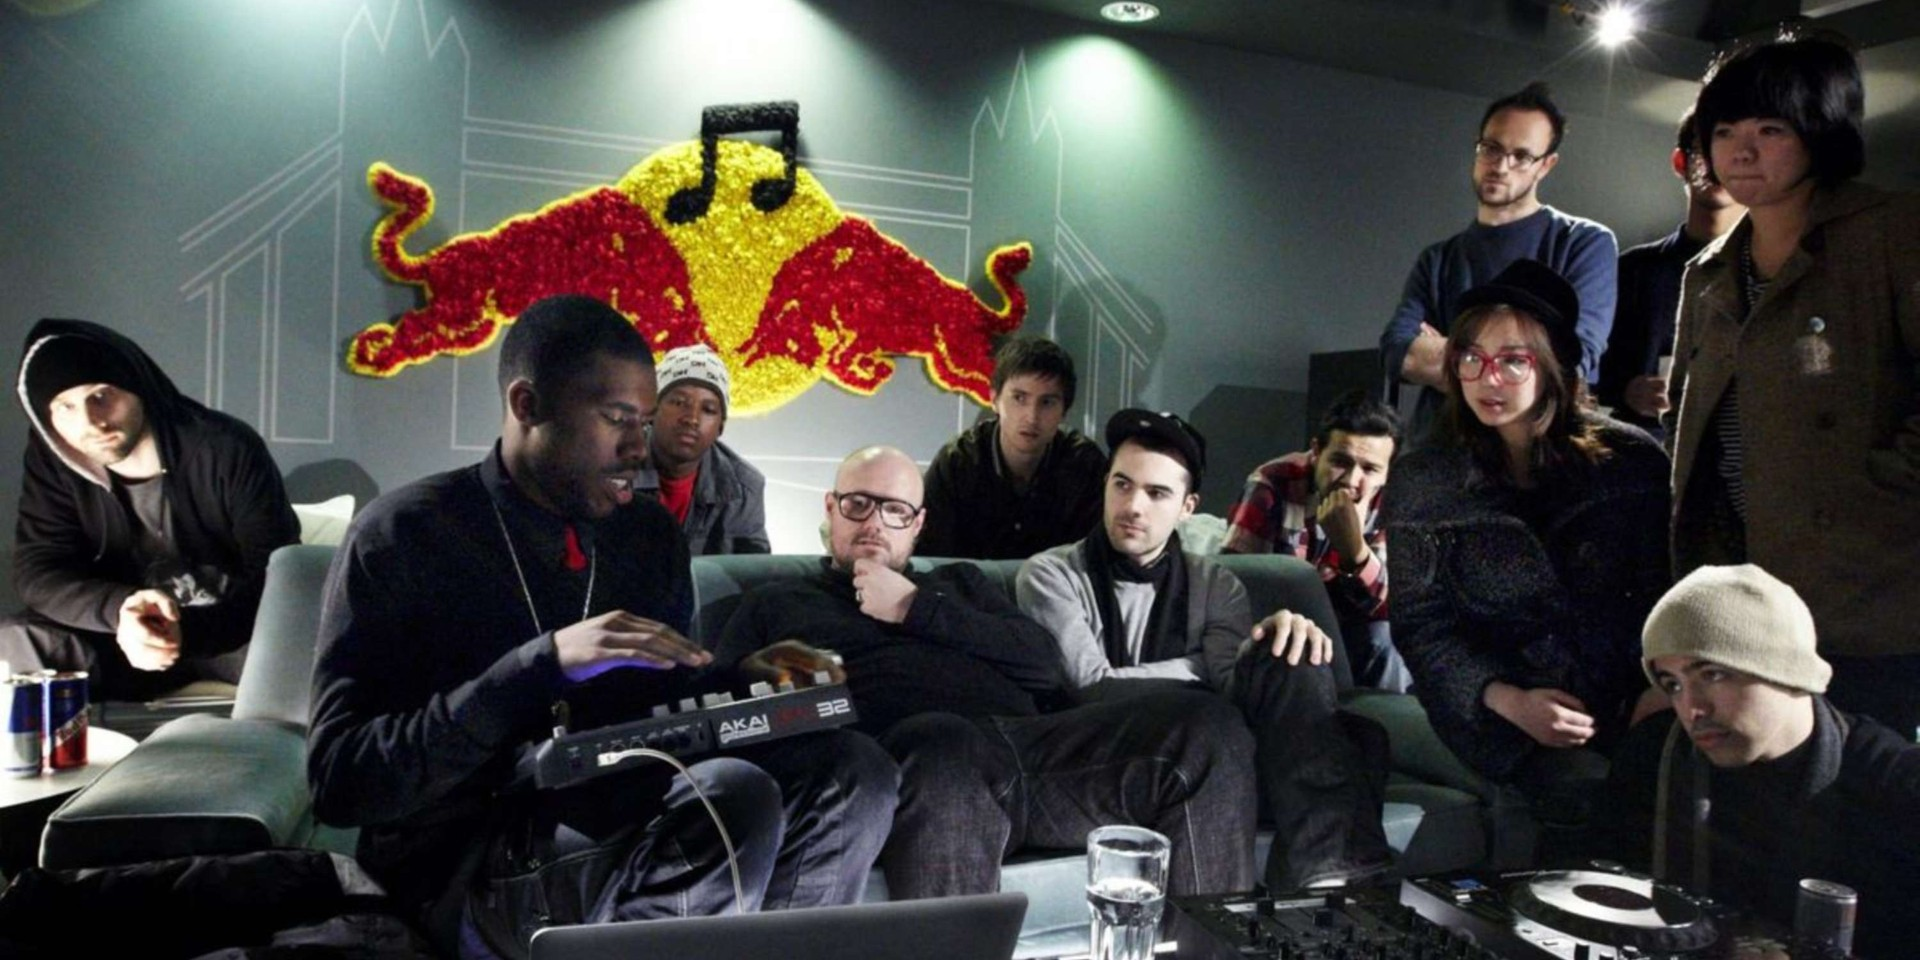 Red Bull Music Academy and Red Bull Radio to close its doors this October after 21 years